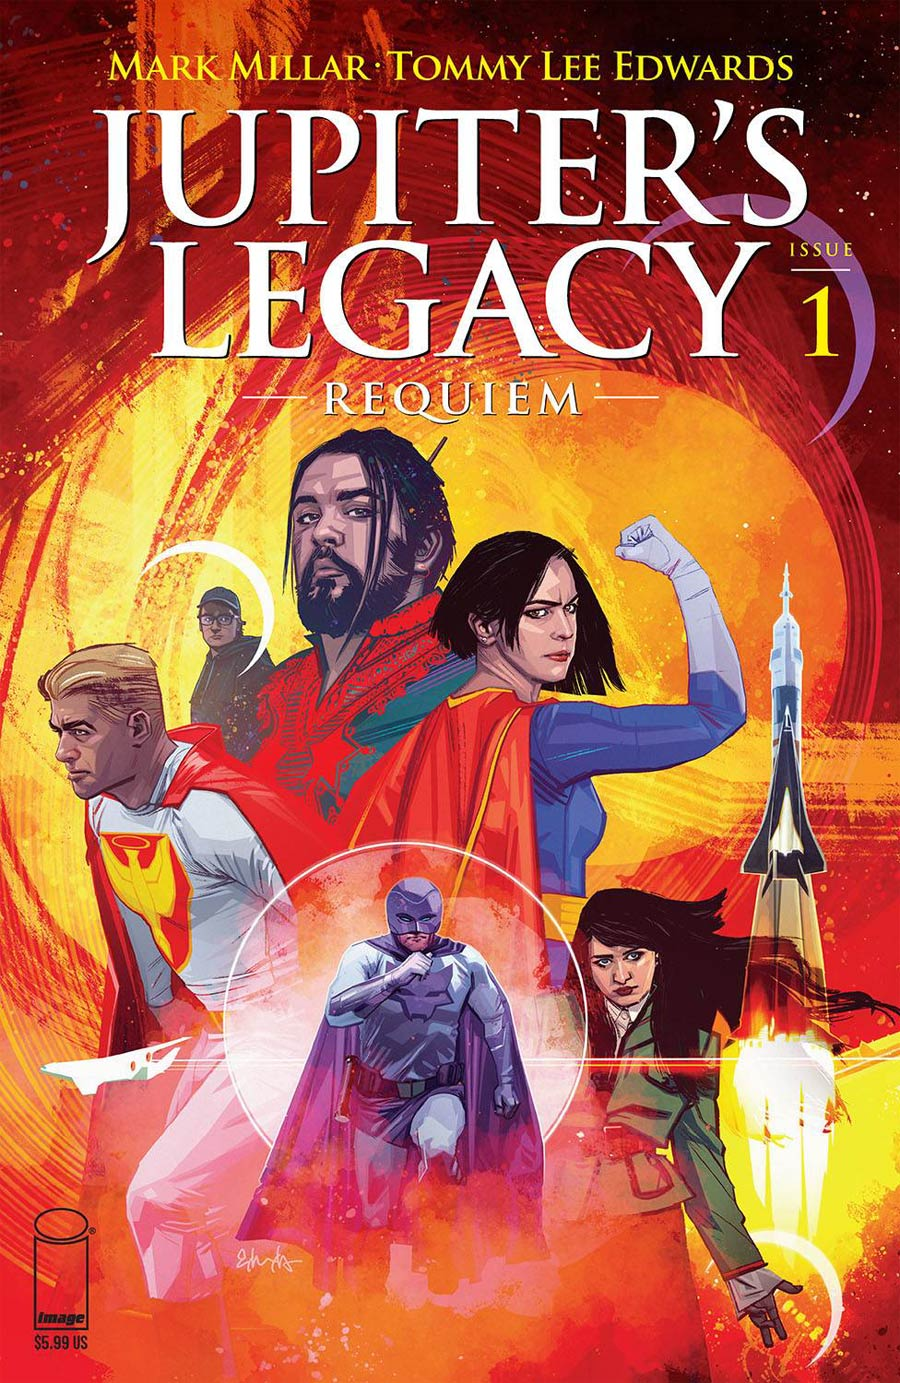 Jupiters Legacy Requiem #1 Cover A Regular Tommy Lee Edwards Cover